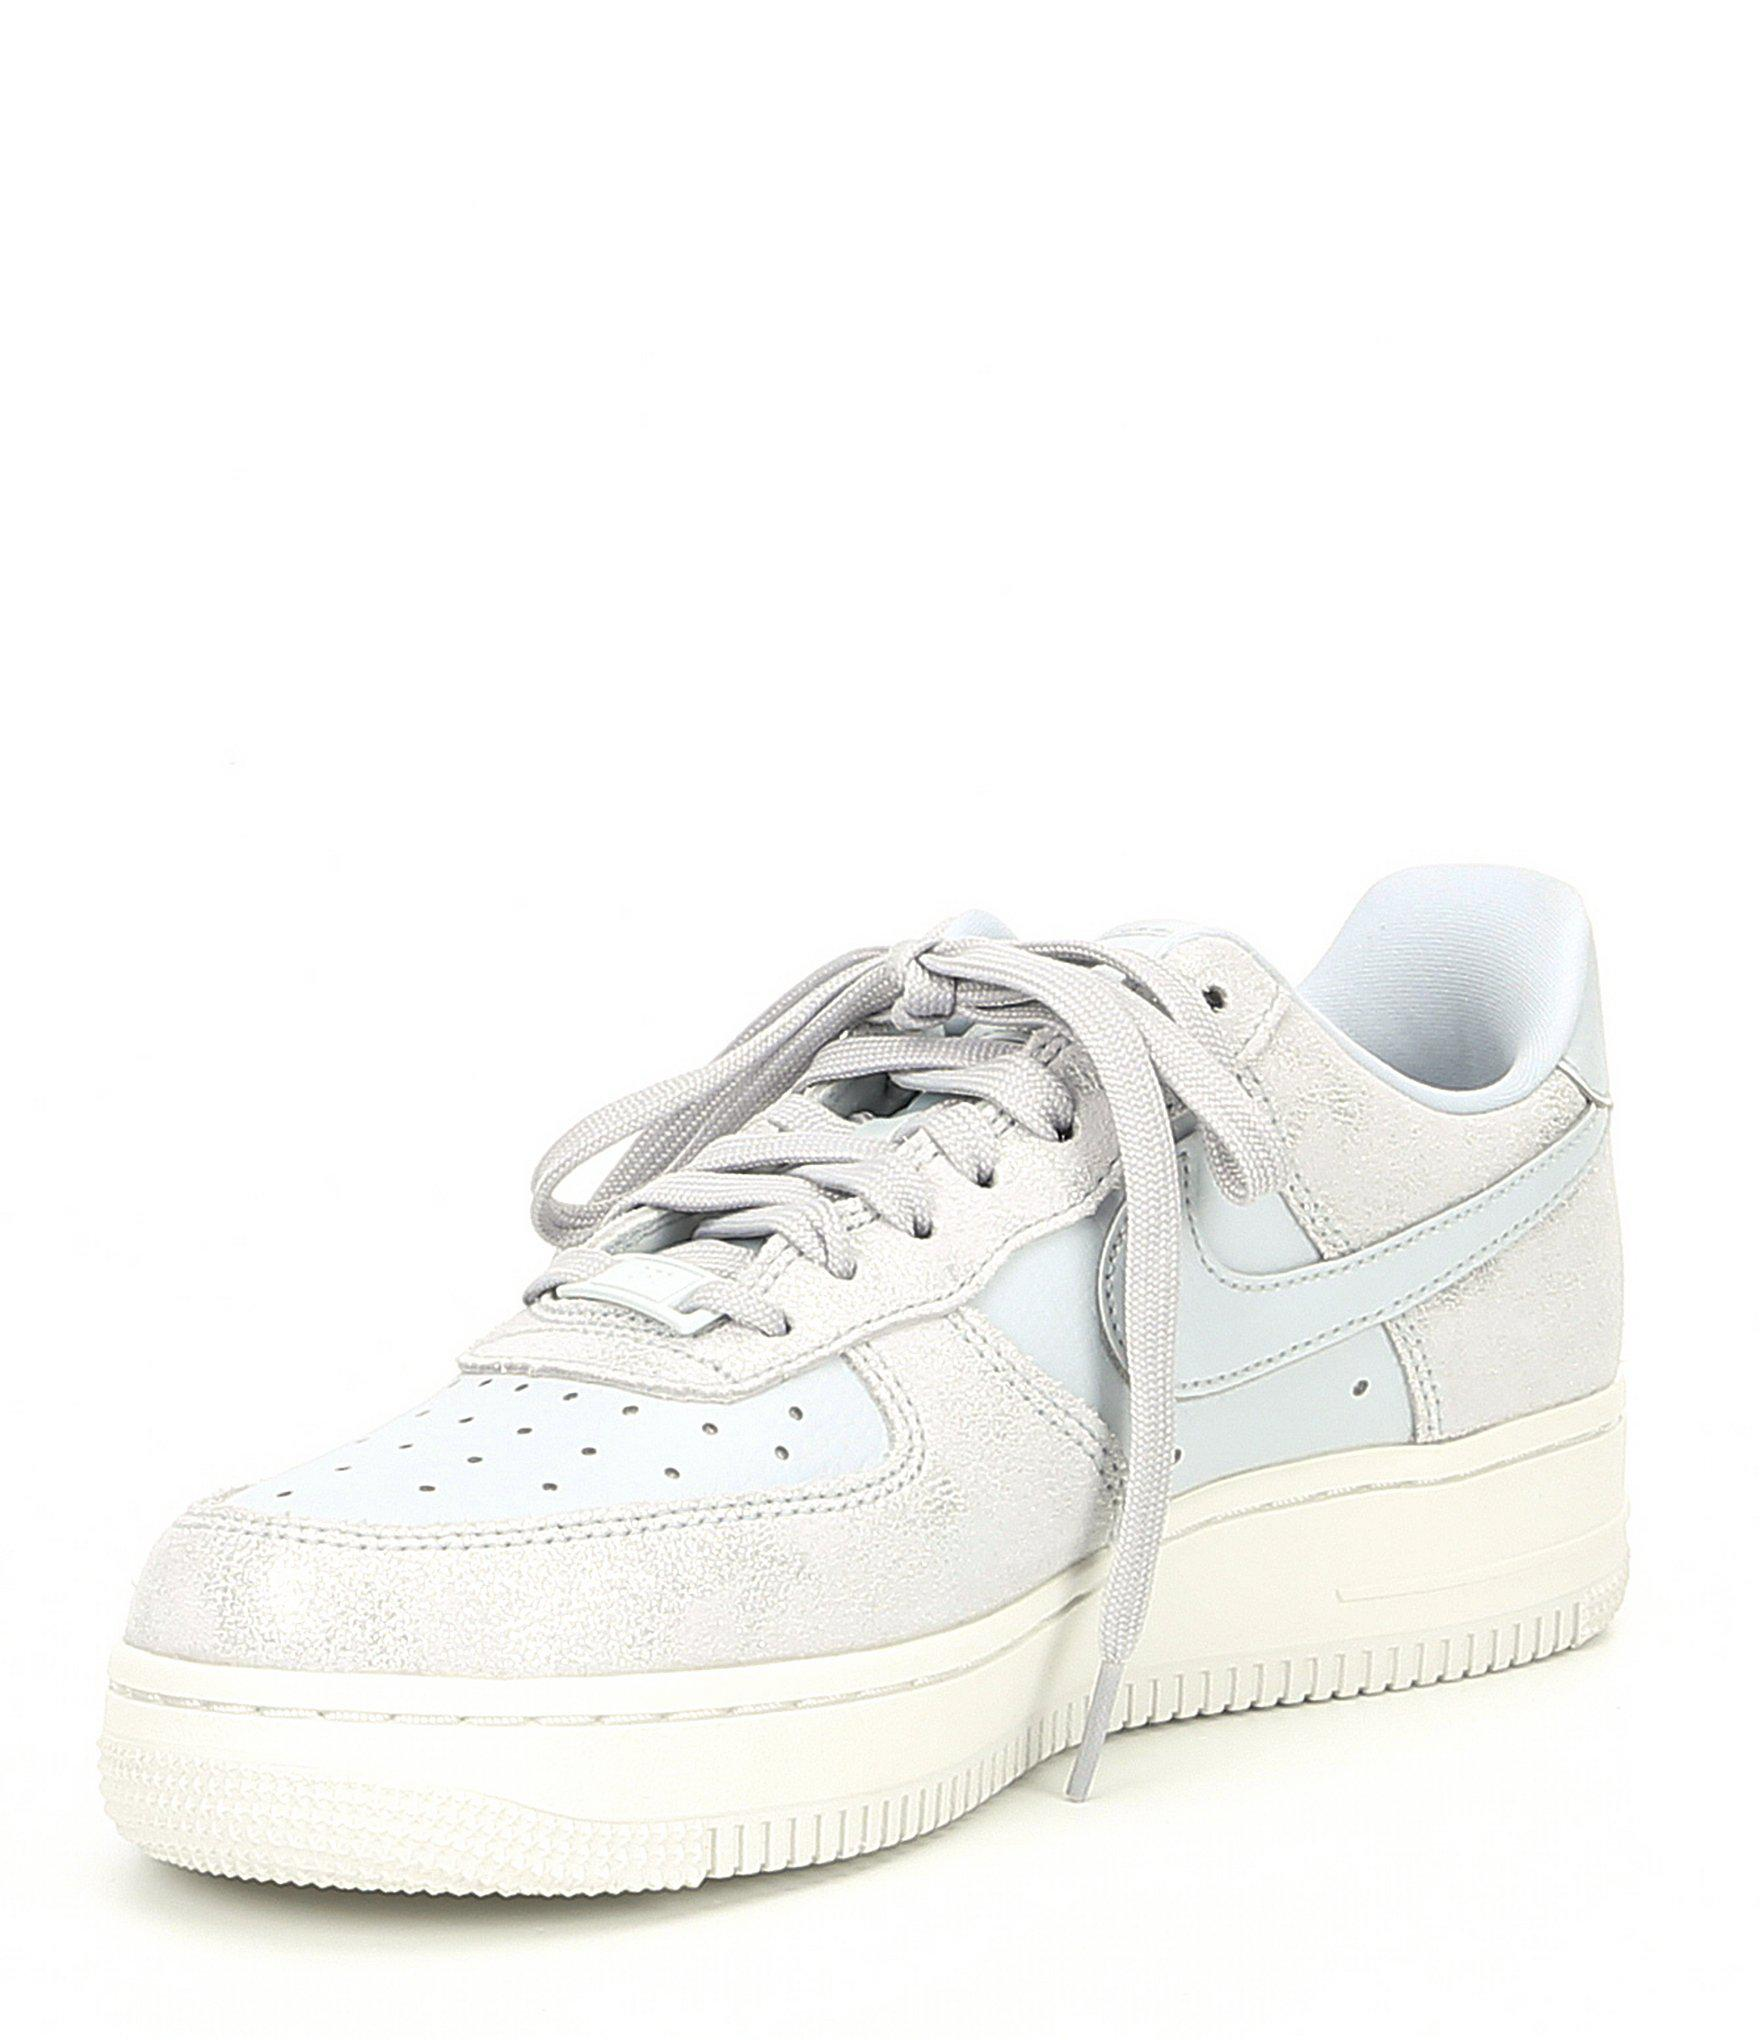 fe8a76945f486 Lyst - Nike Women s Air Force 1 07 Premium Leather Sneaker in White